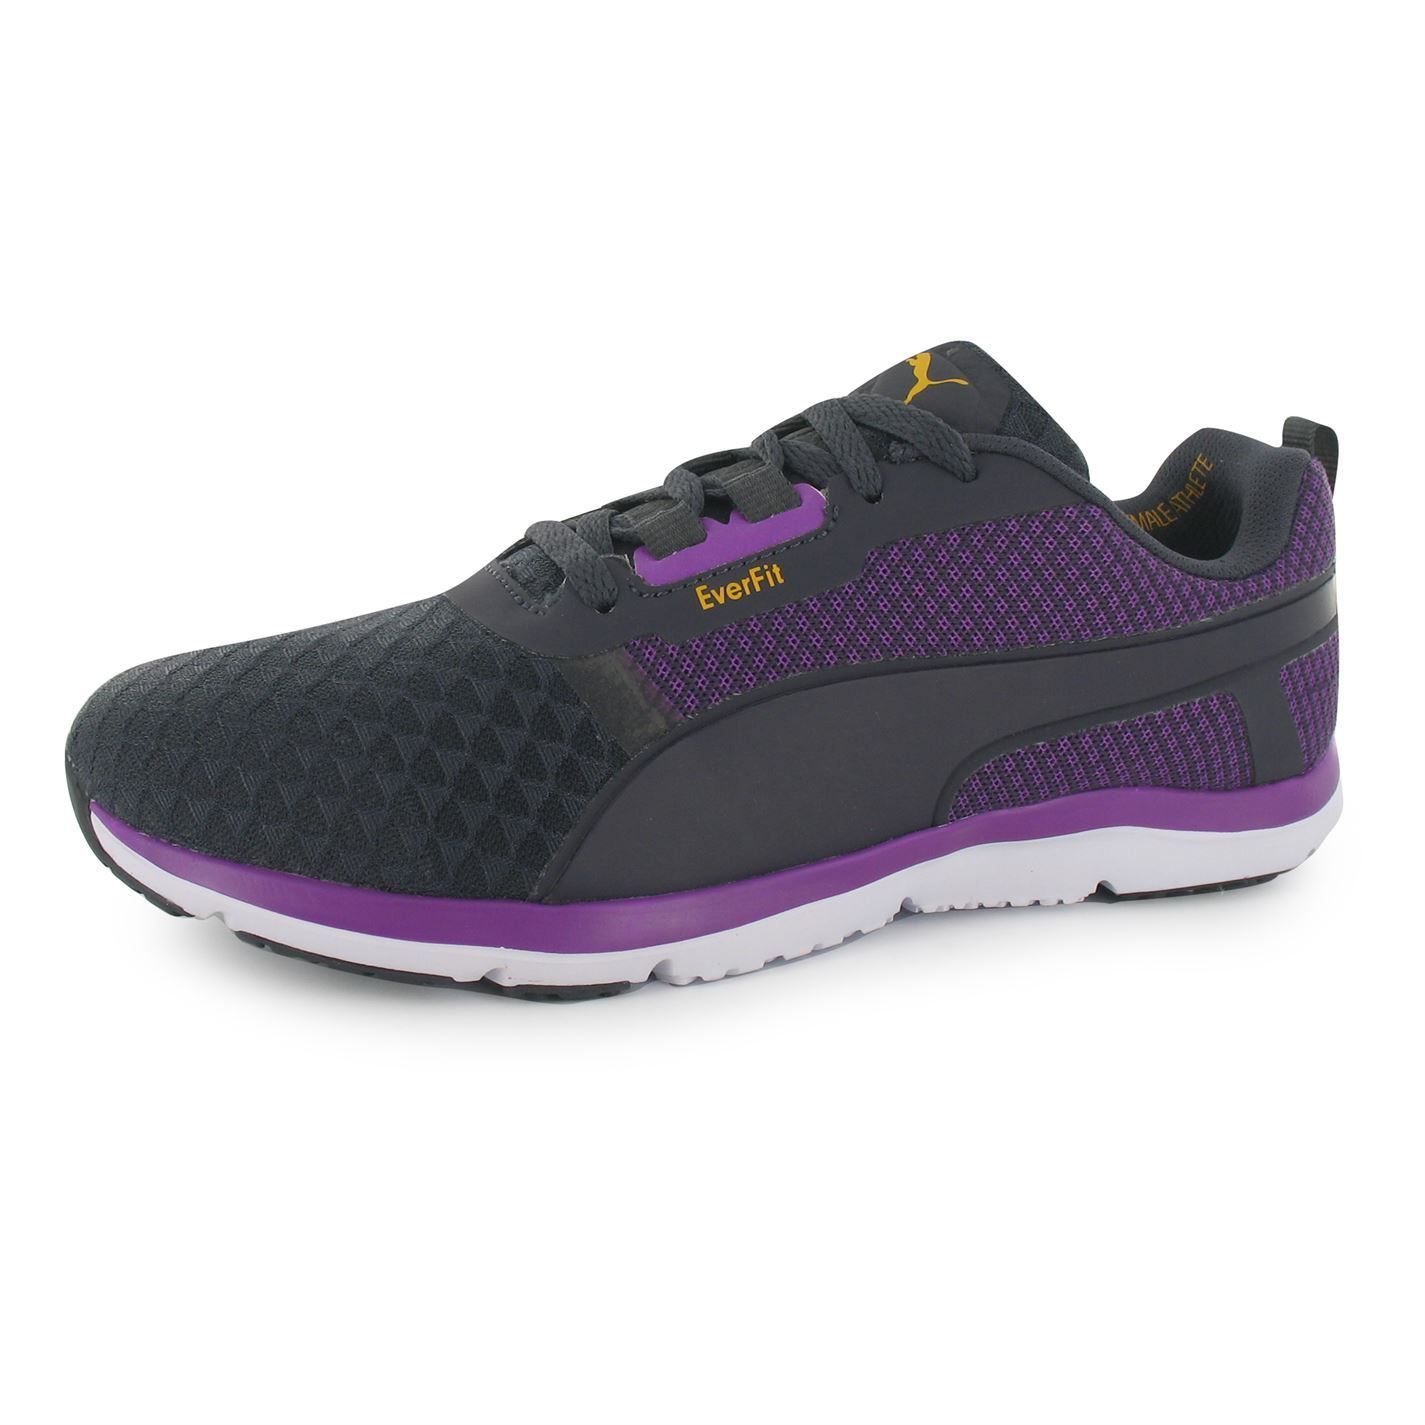 1a67c249200 ... Puma Pulse Flex XT EverFit Running Shoes Womens Grey Purple Trainers  Sneakers ...